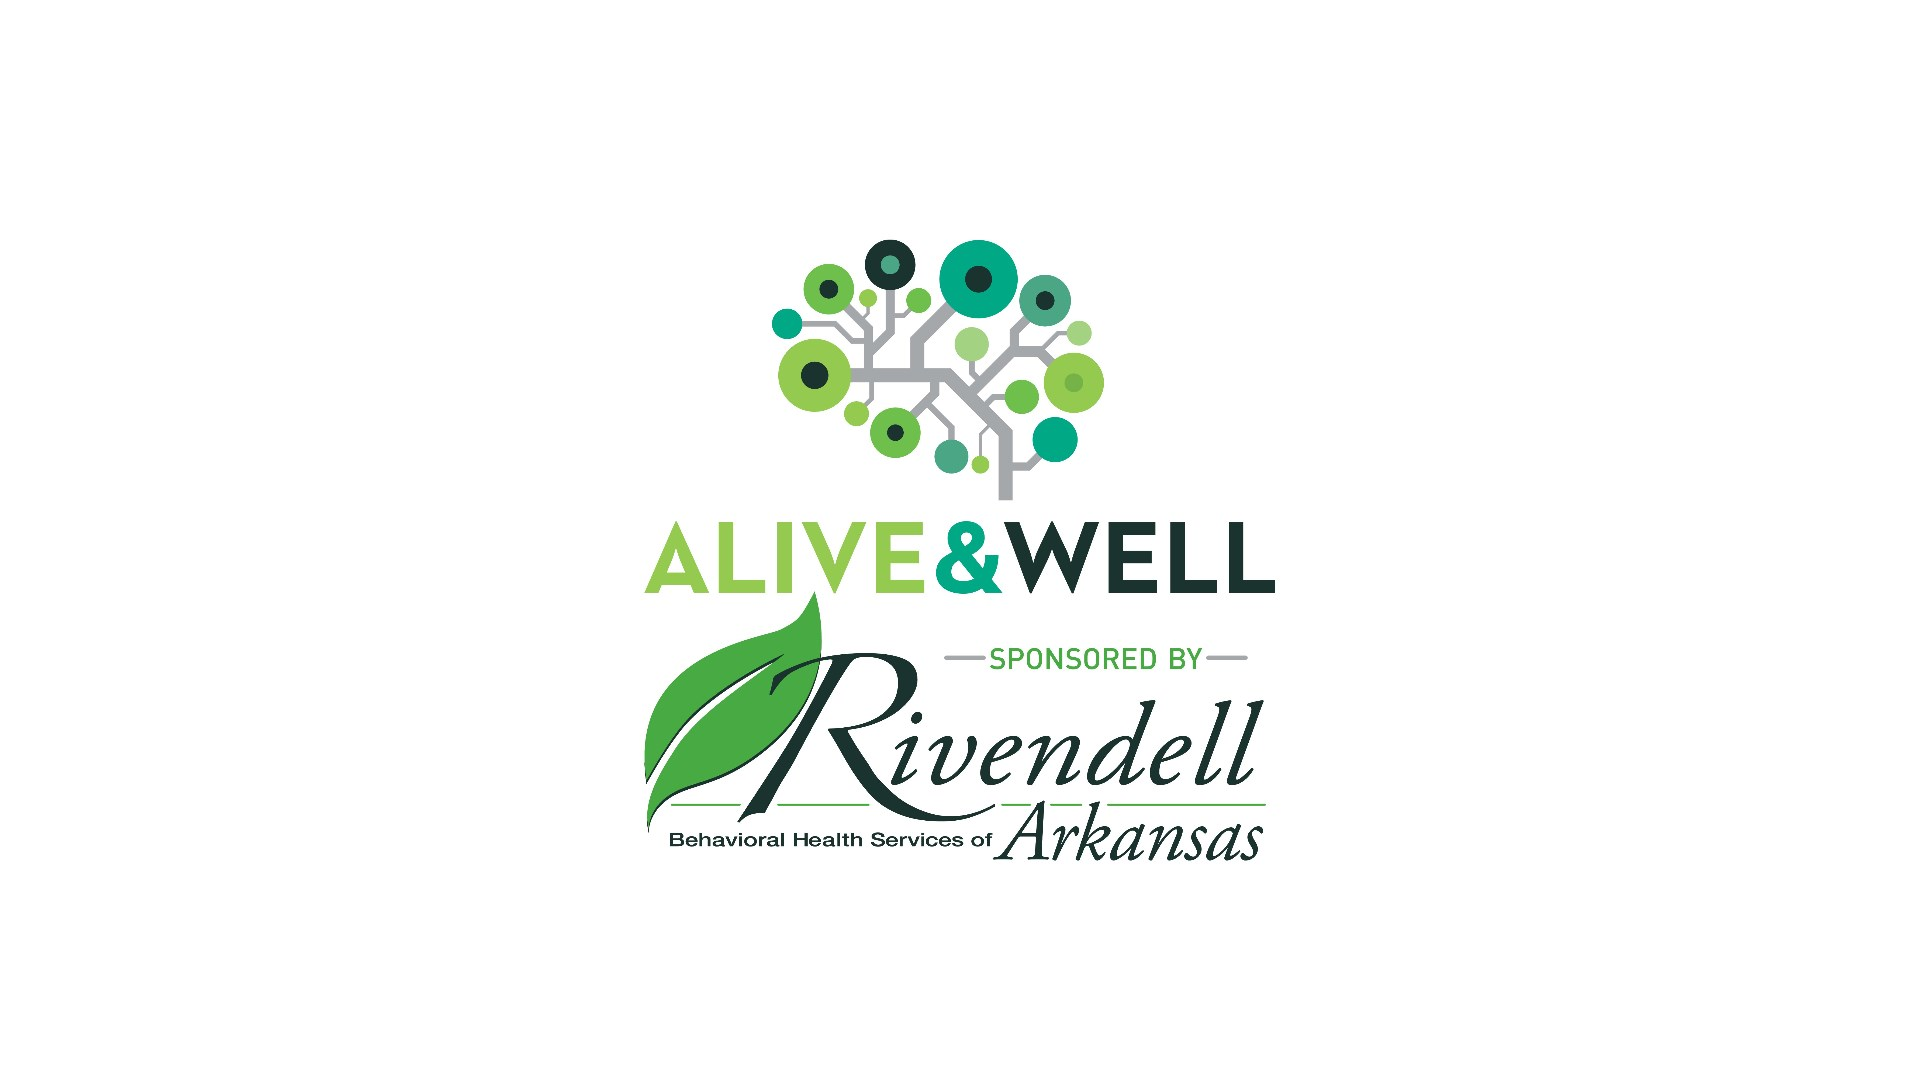 'Alive & Well' to shine light on mental health resources